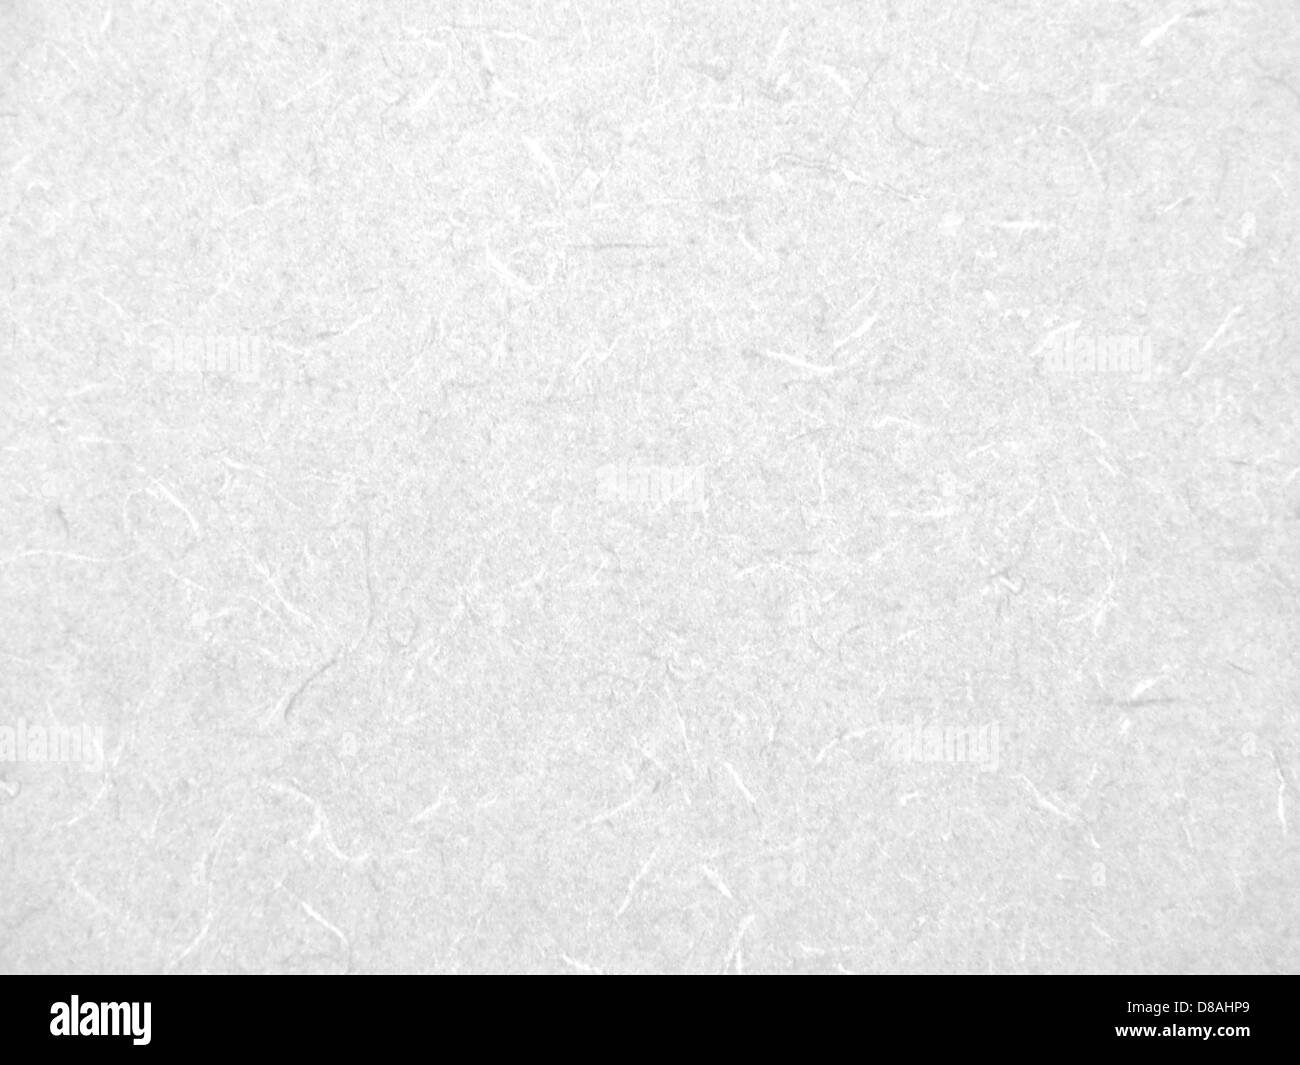 white abstract pattern laminate counterop texture. - Stock Image